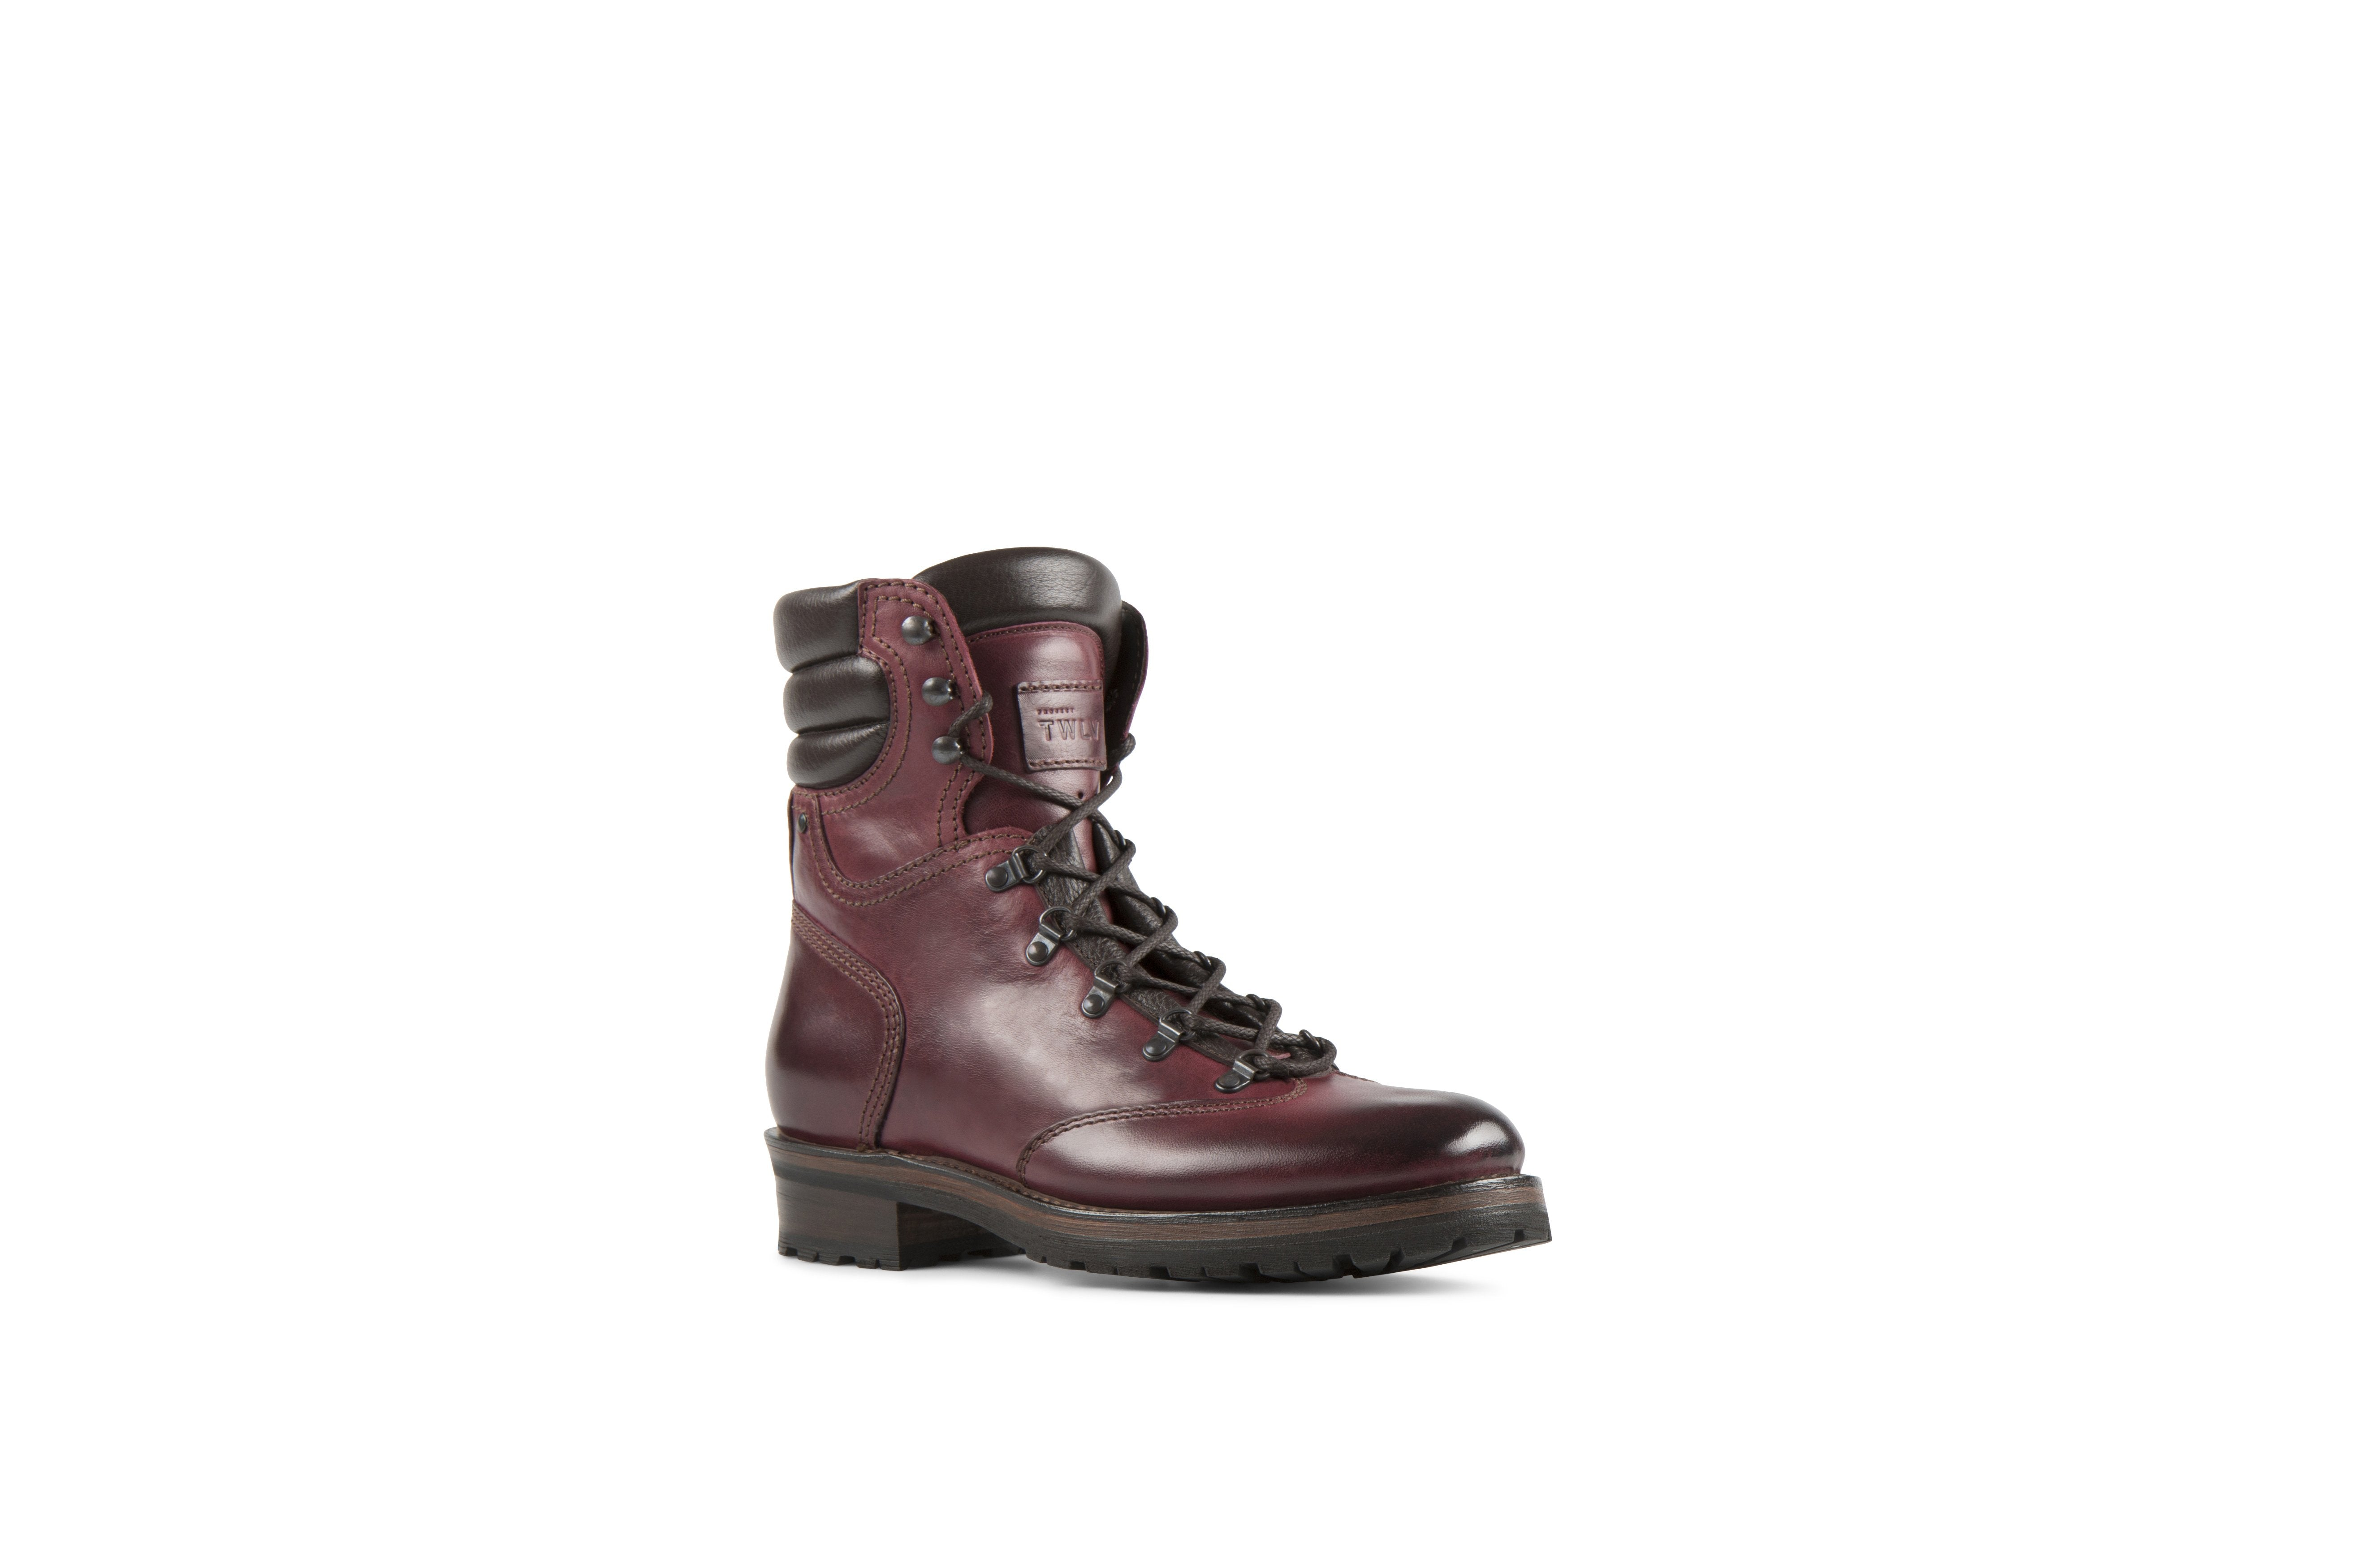 Reflex Burgundy Cordovan Leather Hiker Boot